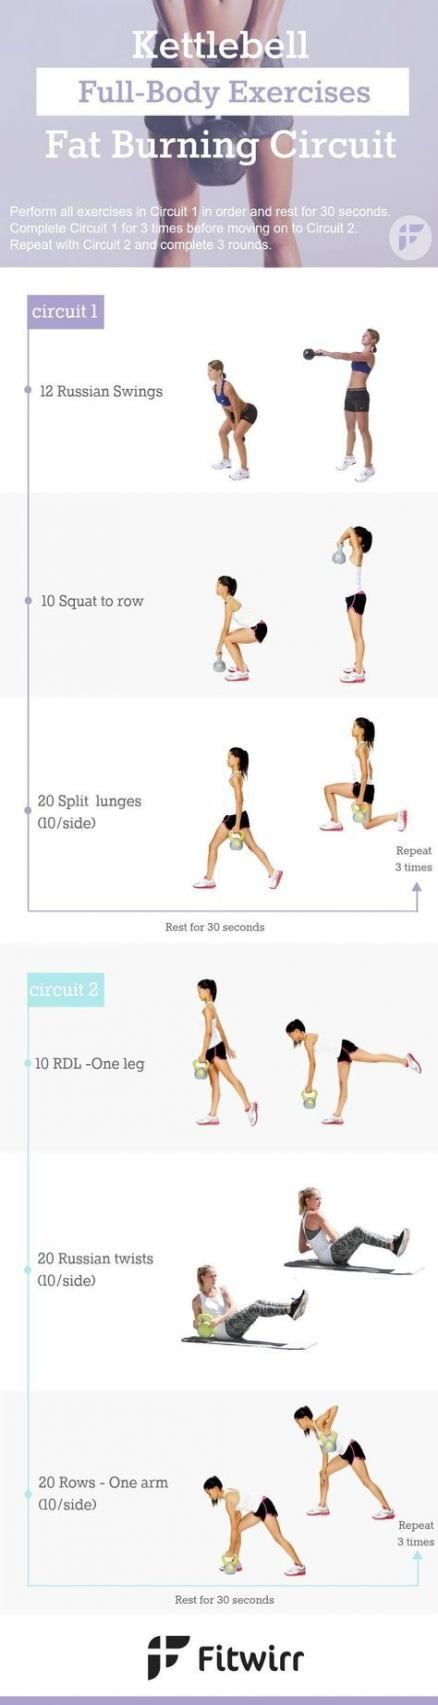 New Diet Plans To Lose Weight For Men Fat Burning 21 Days Ideas #diet